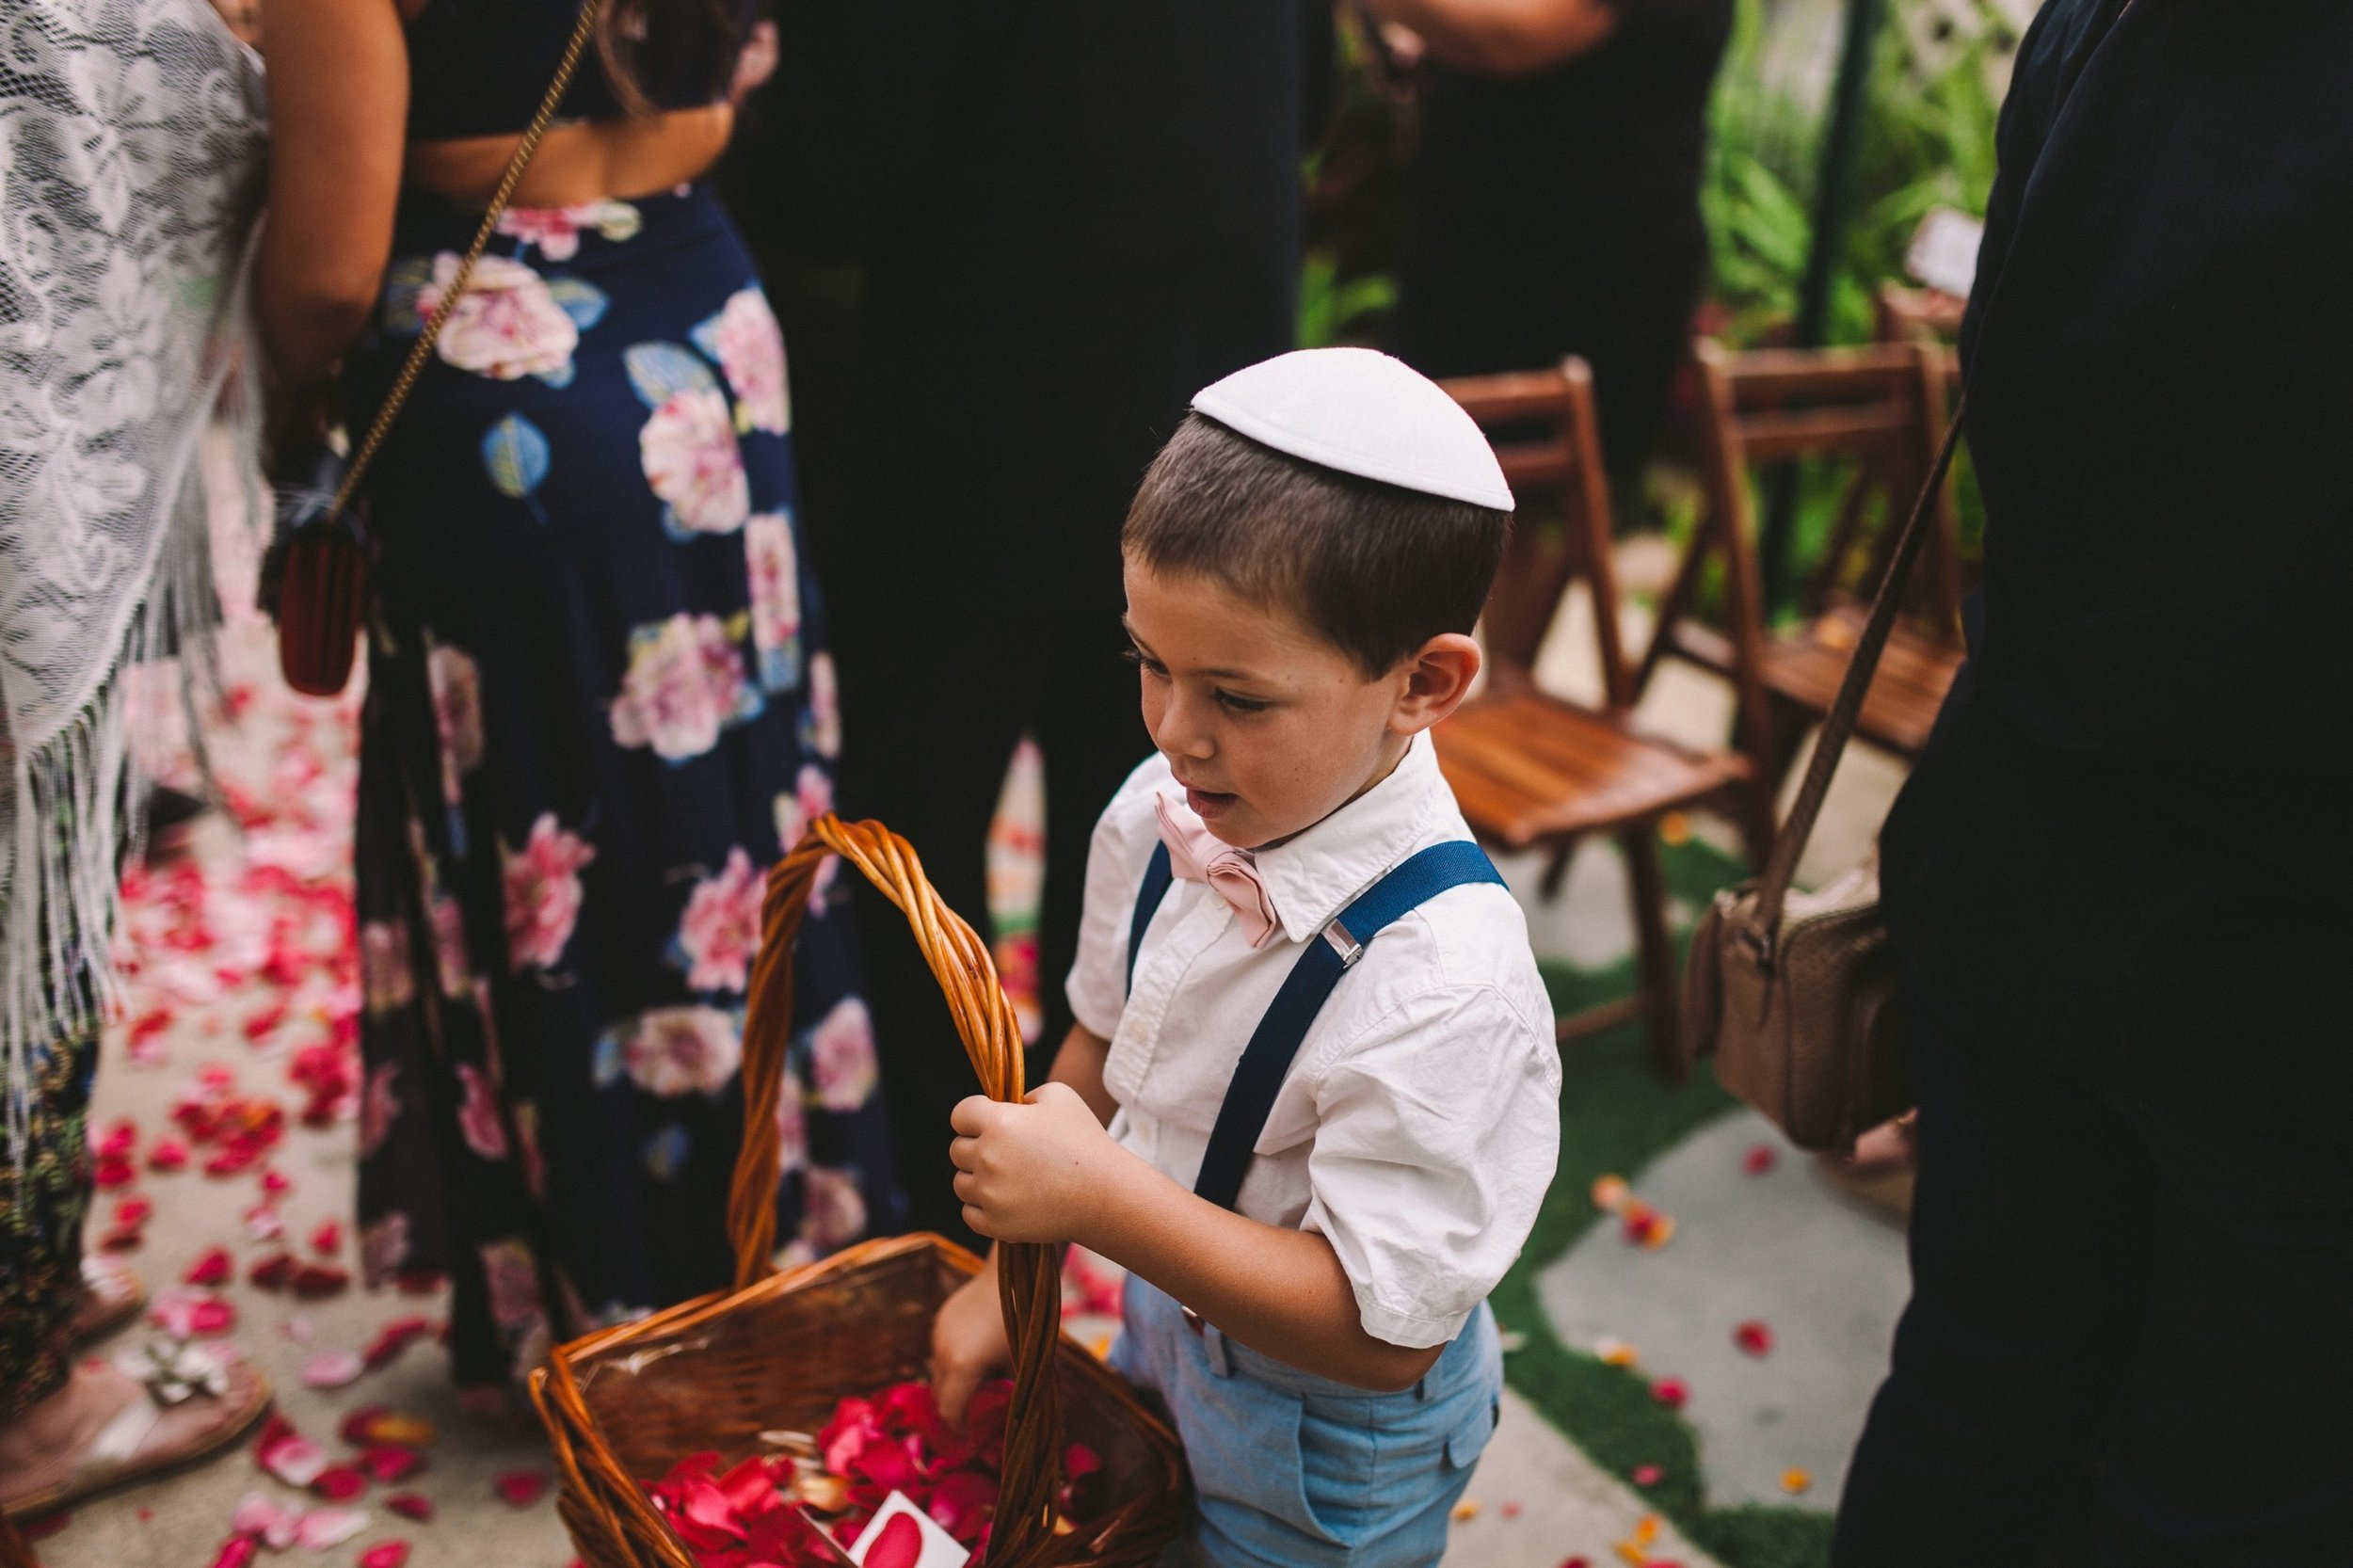 Intimate & Modern Jewish Pacifica Wedding 641.jpg